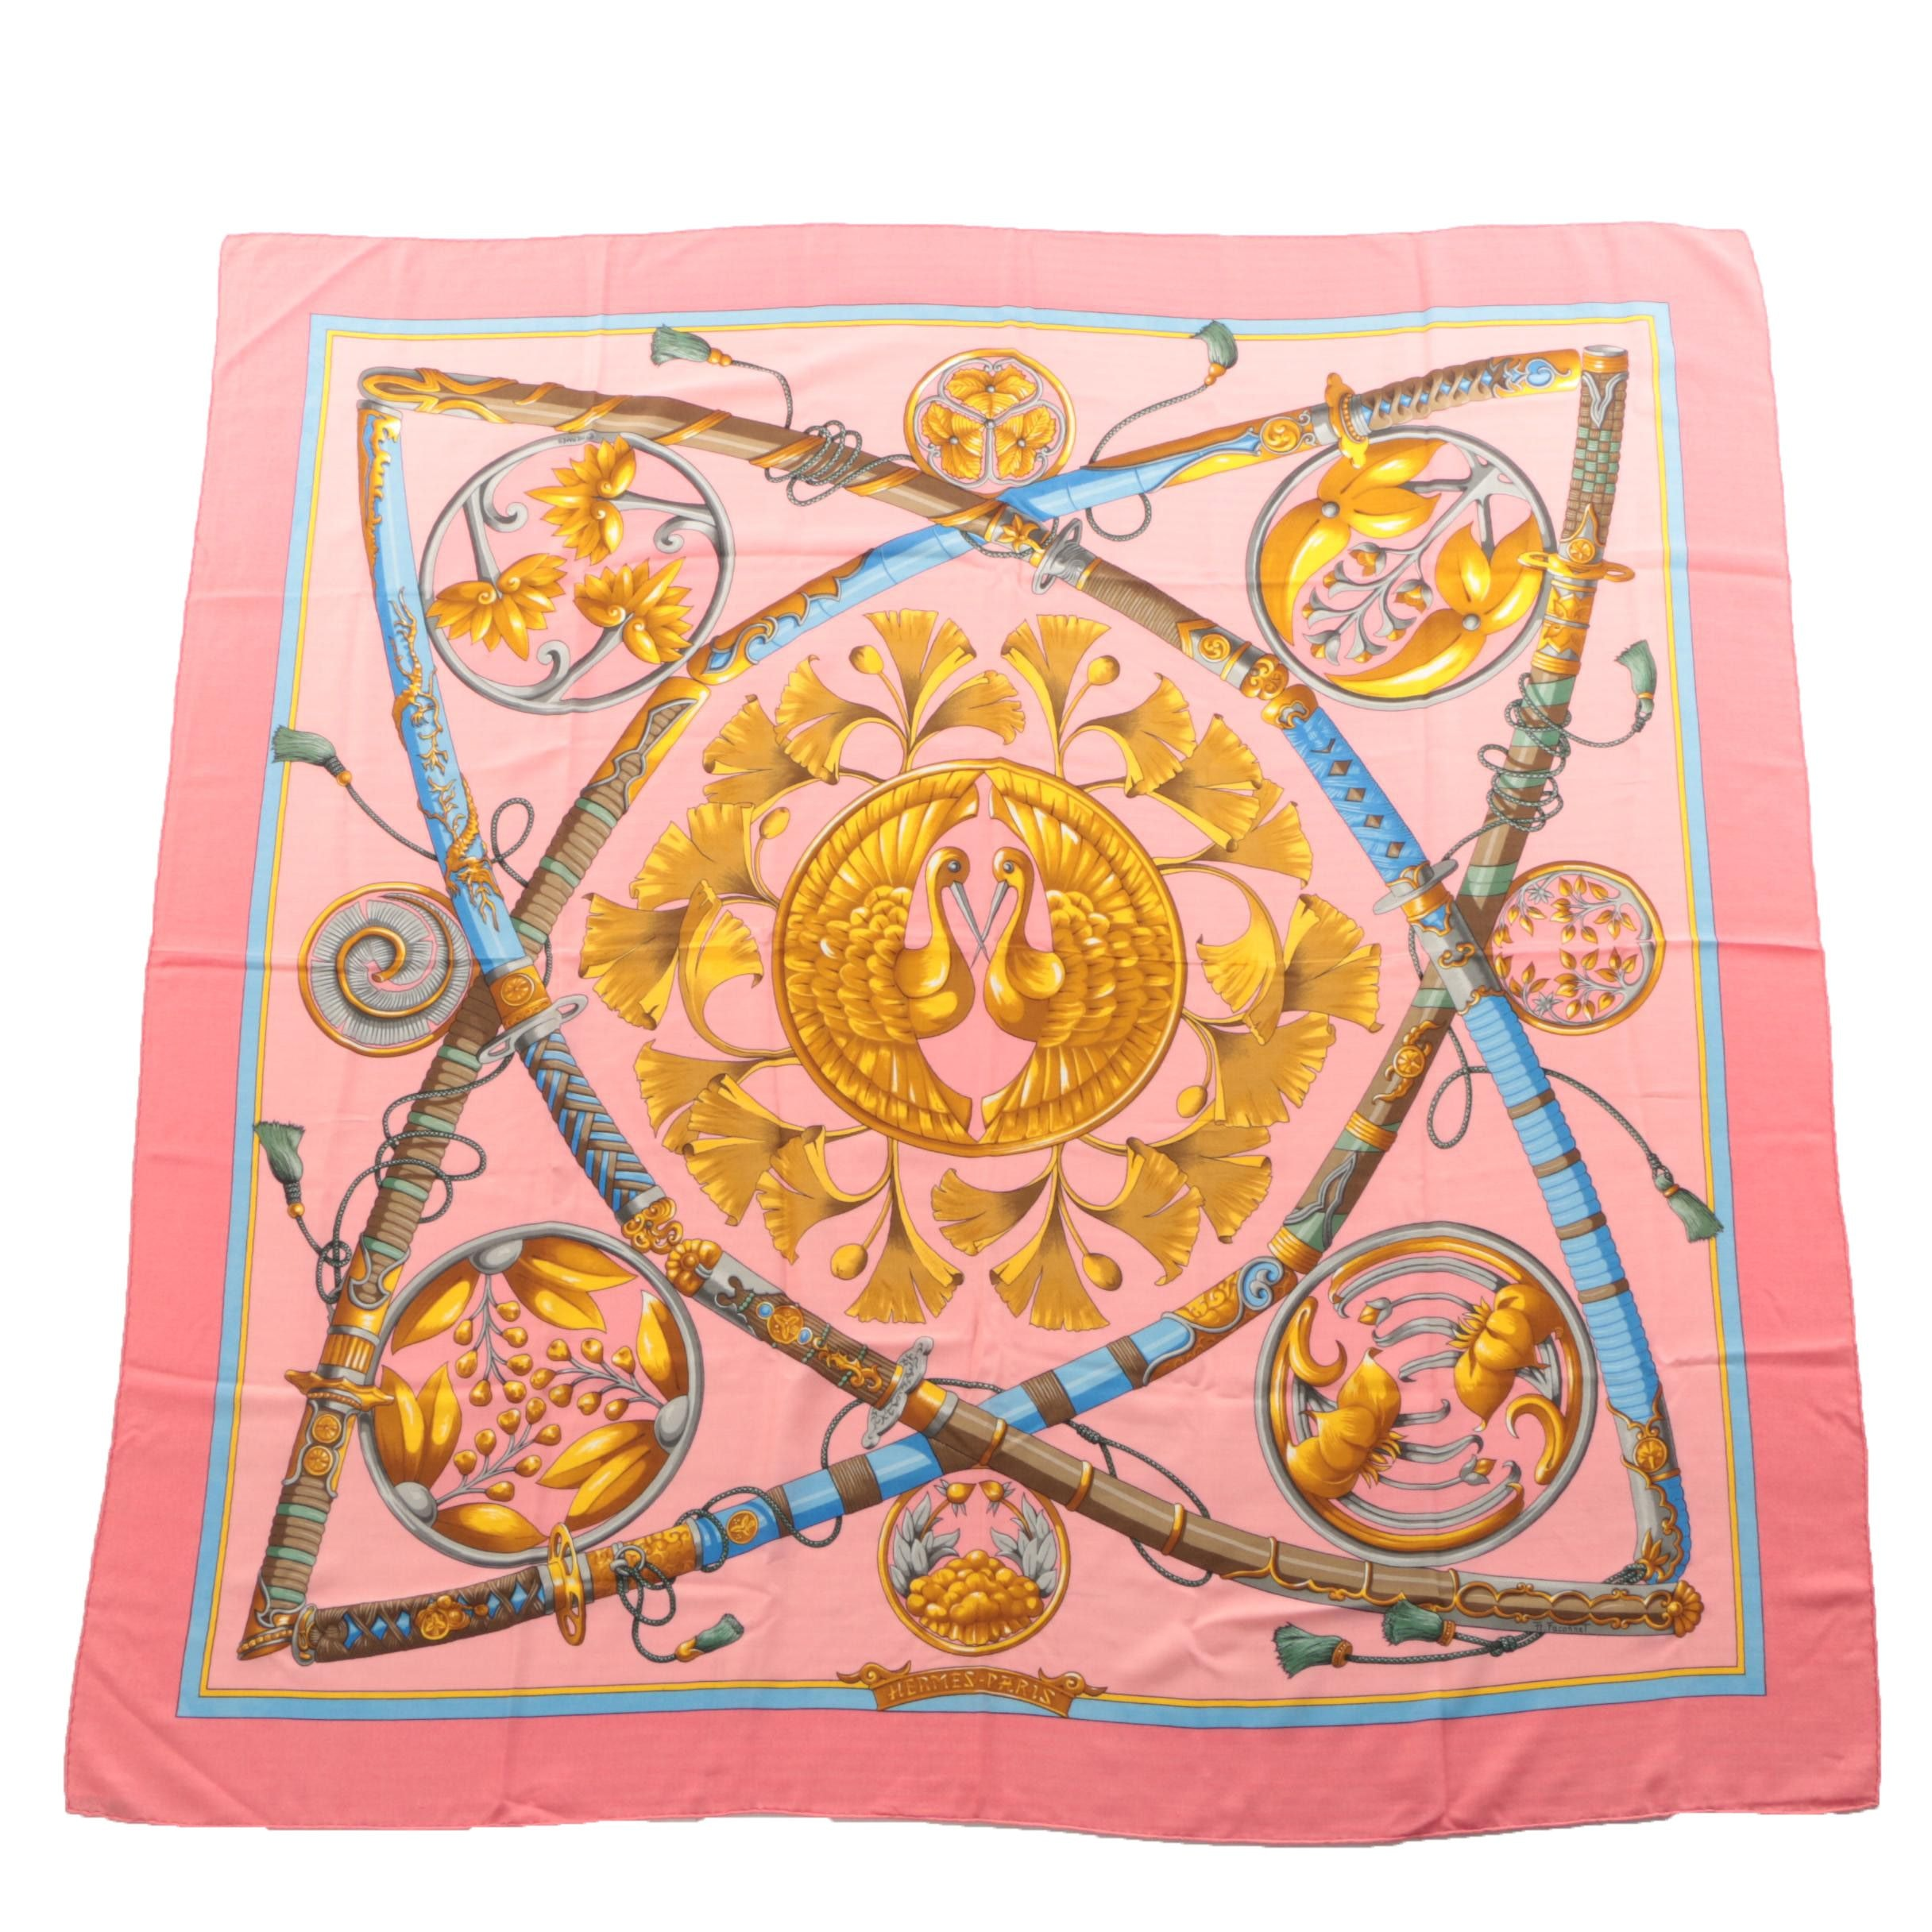 "Hermès of Paris ""Daimyo Princes du Soleil Levant"" Cashmere and Silk Blend Scarf"